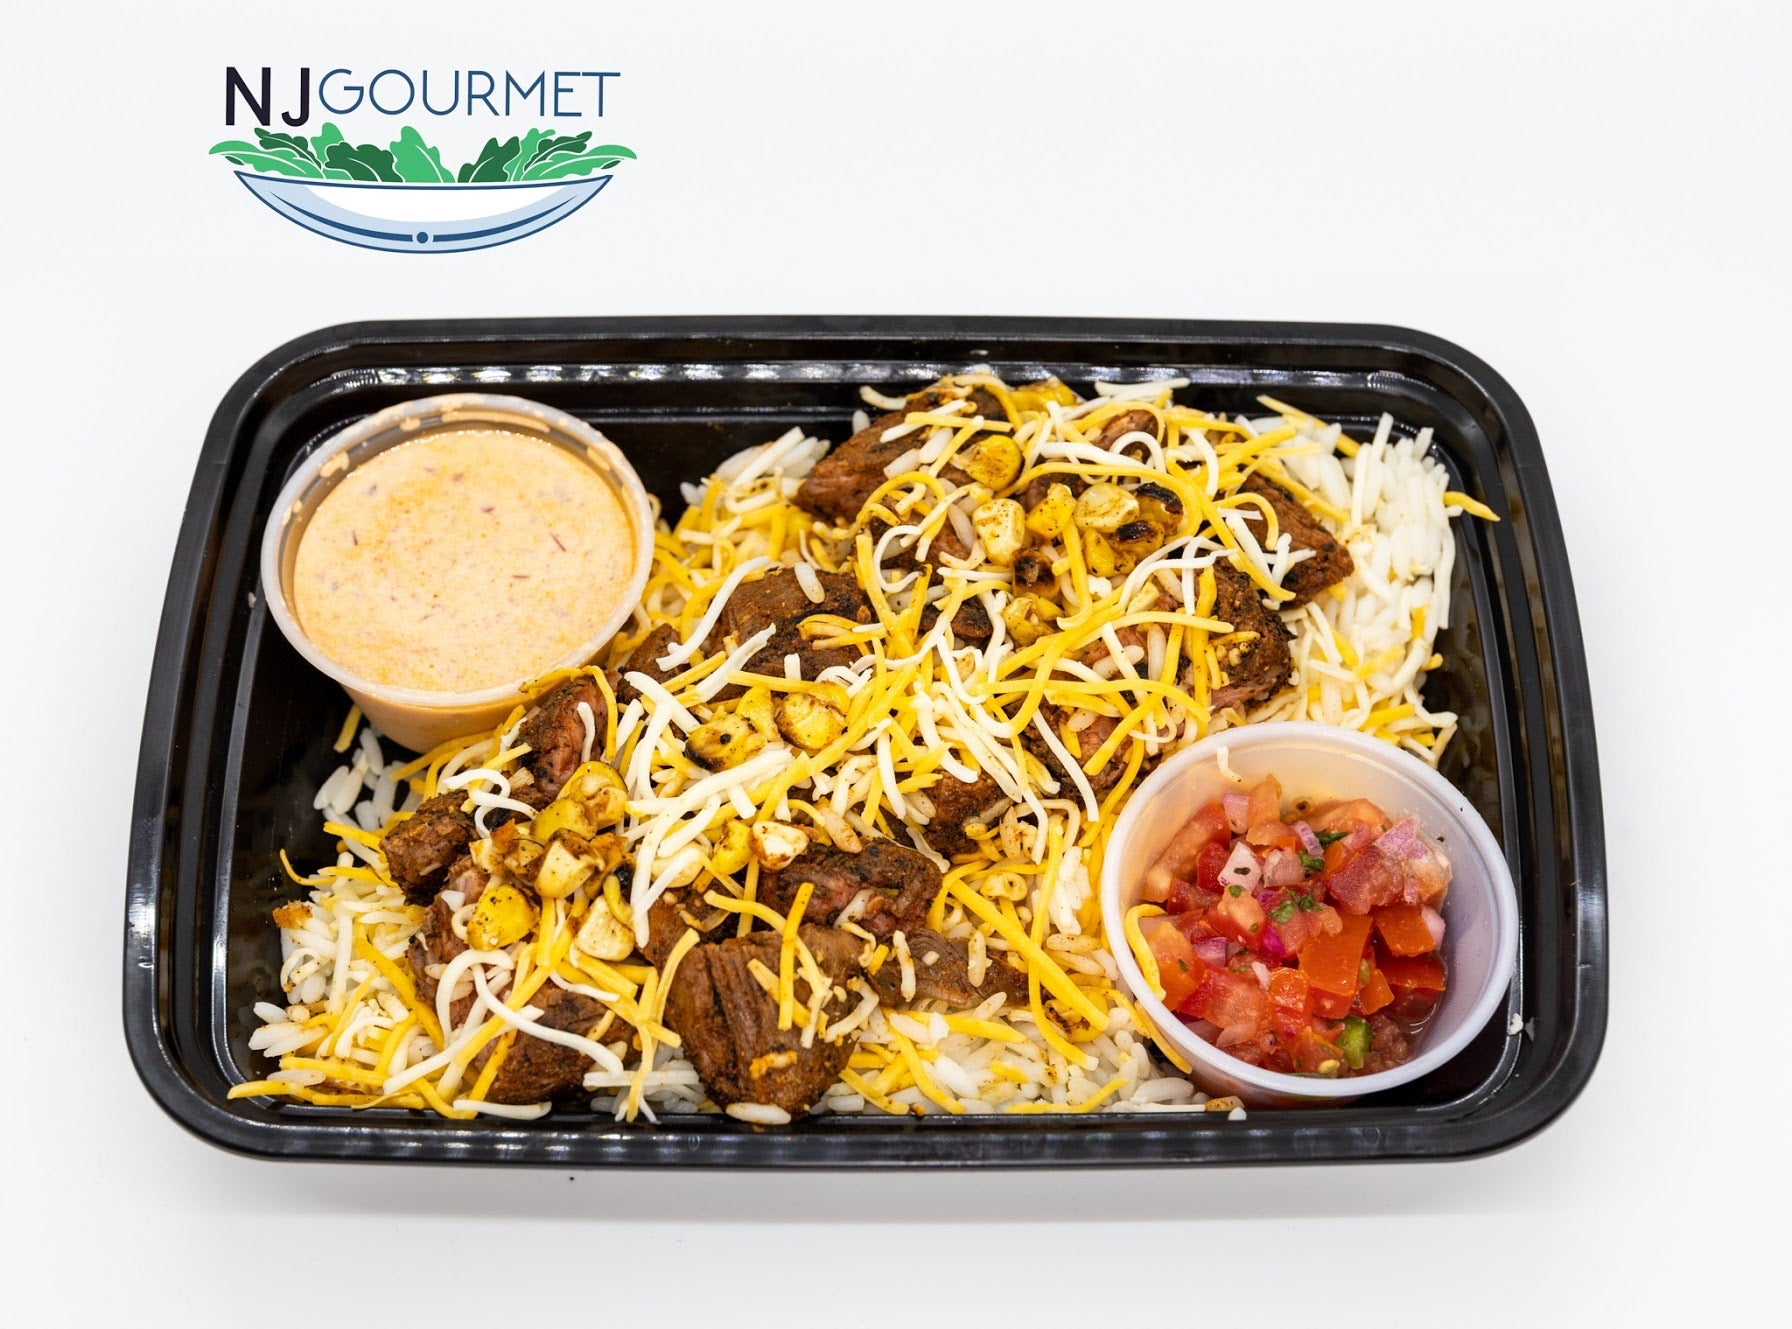 STEAK BURRITO BOWL - NJ Gourmet Meal Prep